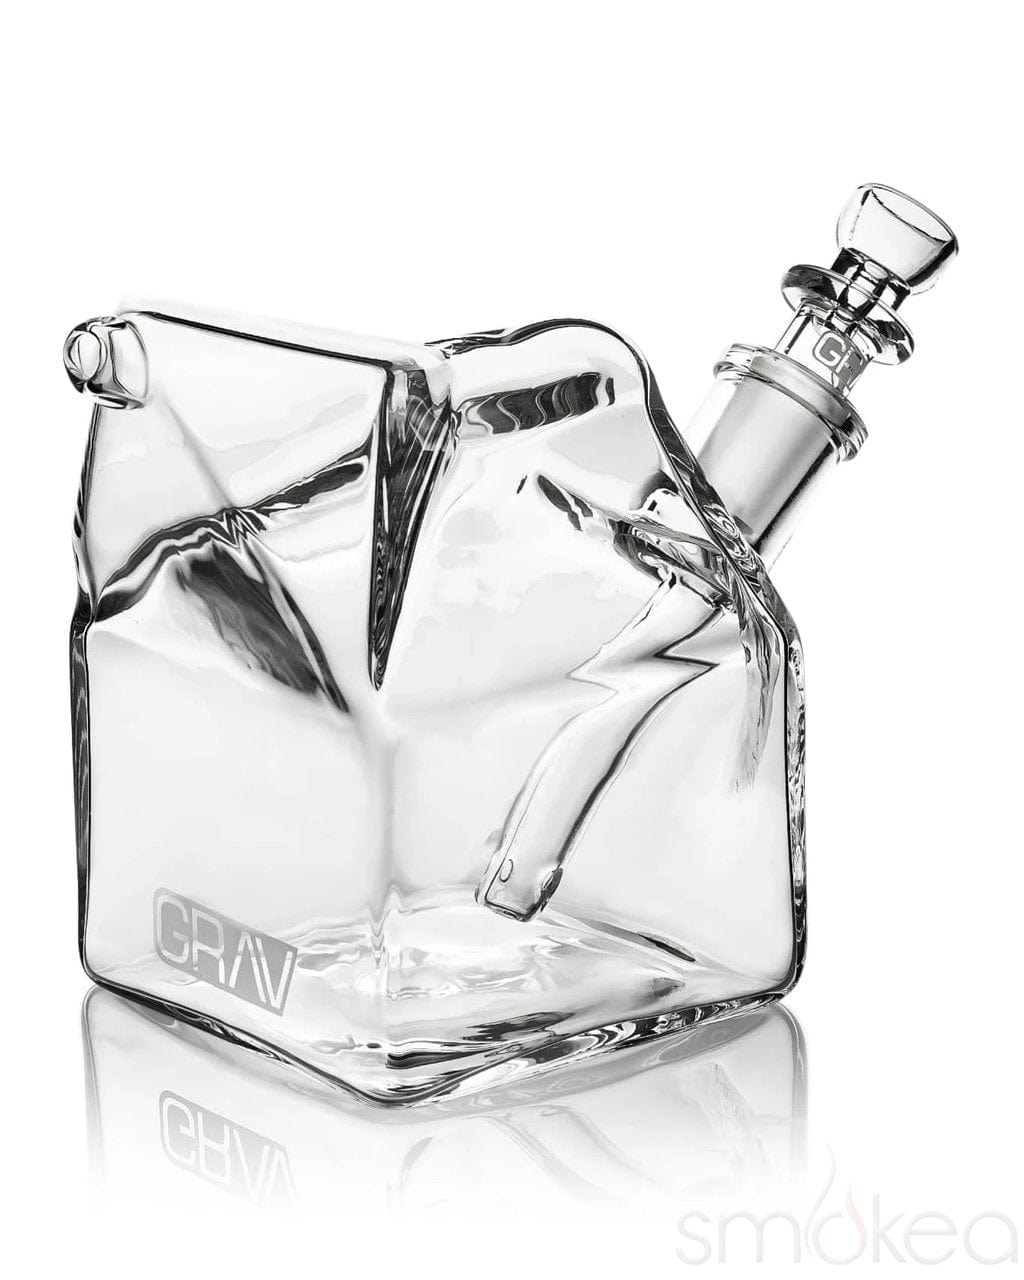 GRAV Sip Series Milk Carton Bubbler - SMOKEA®